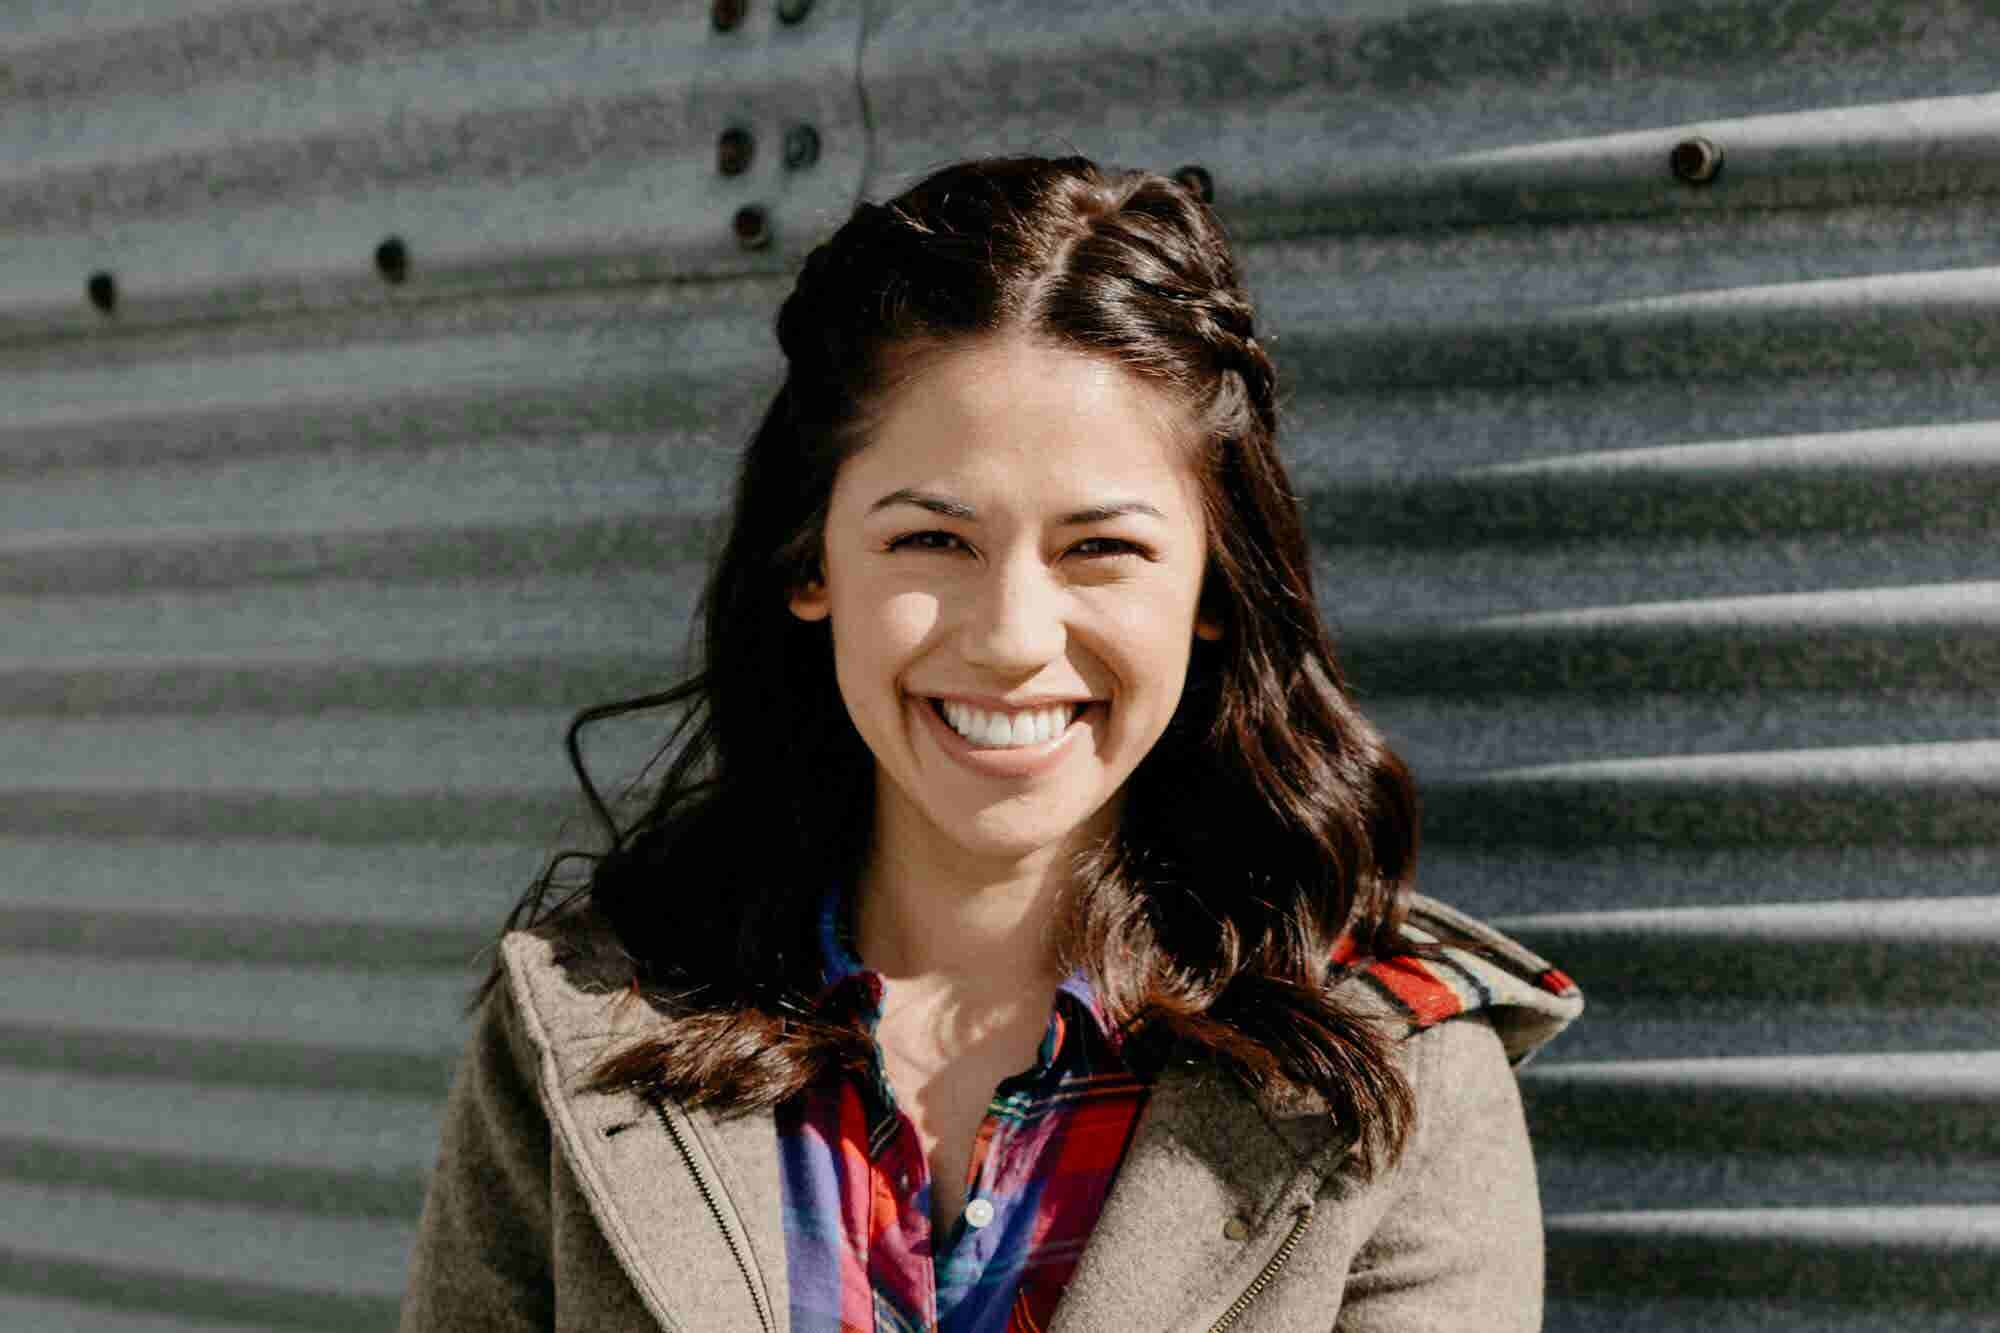 Food Network's Molly Yeh Shares How She Built Her Blog Into a Growing...